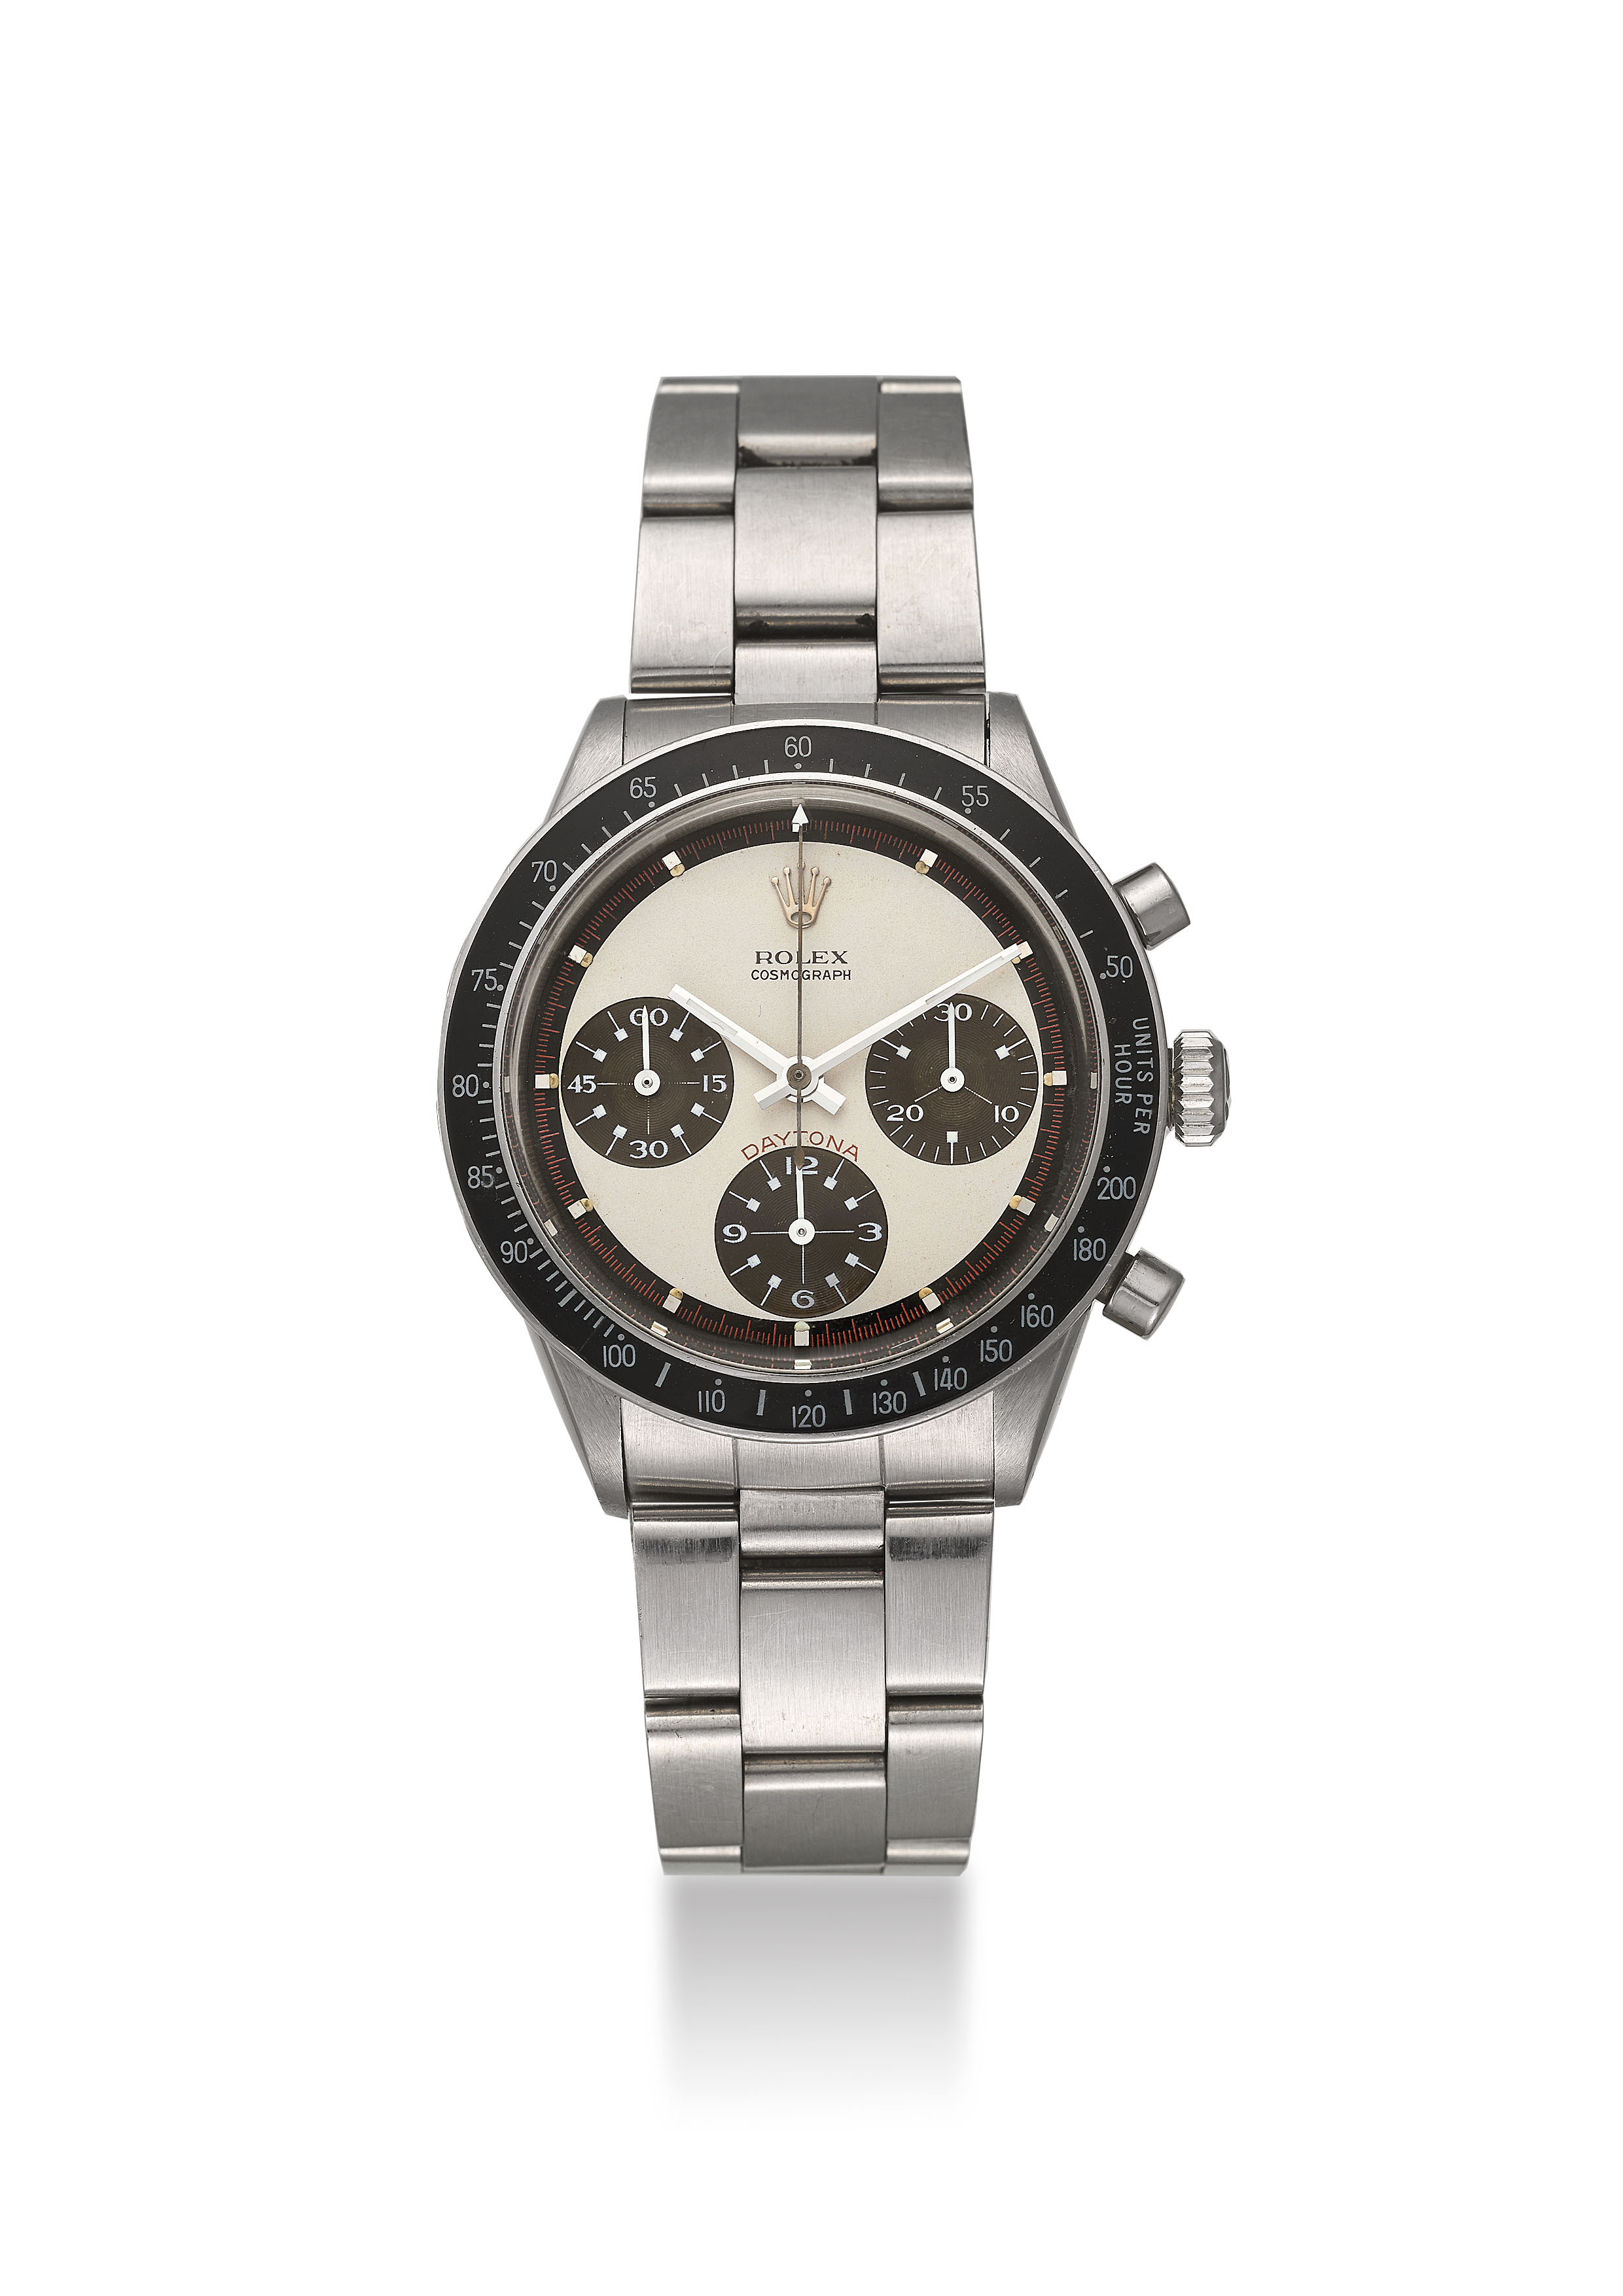 ROLEX. A VERY FINE, RARE AND ATTRACTIVE STAINLESS STEEL CHRONOGRAPH WRISTWATCH WITH PAUL NEWMAN TROPICAL DIAL